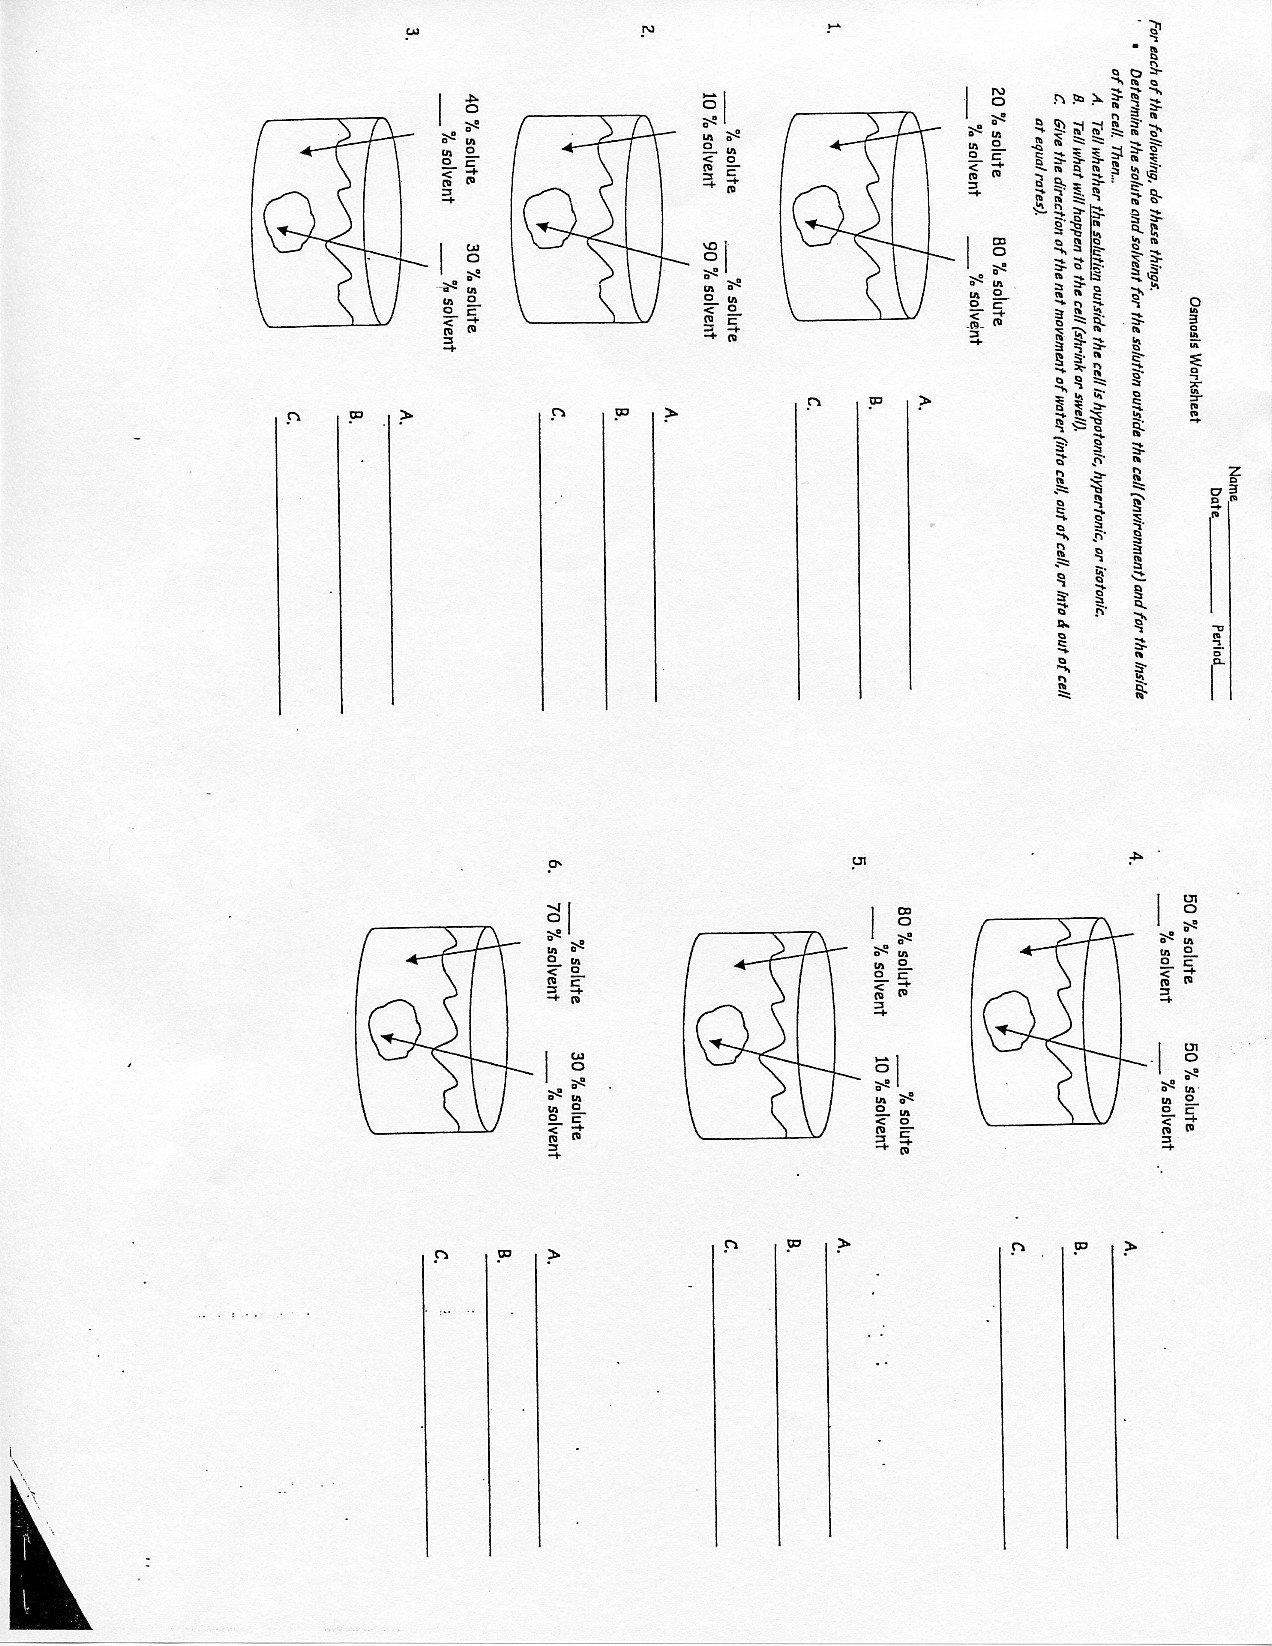 worksheet Tonicity And Osmosis Worksheet ticritostact worksheet and osmosis download biology diffusion at marks web of